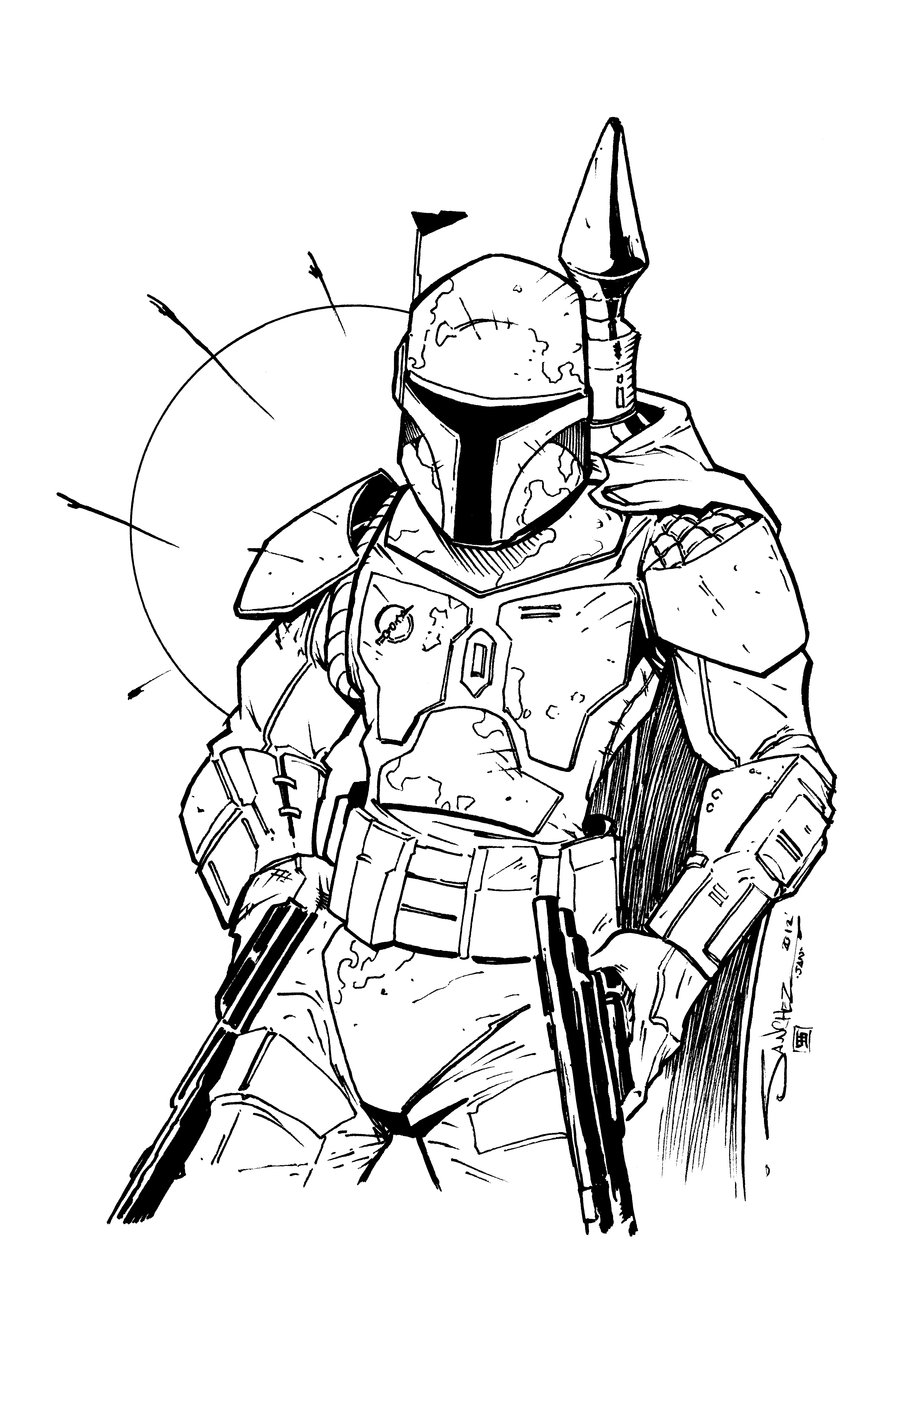 boba fett coloring pages printable star wars boba fett coloring pages coloring home pages fett coloring boba printable